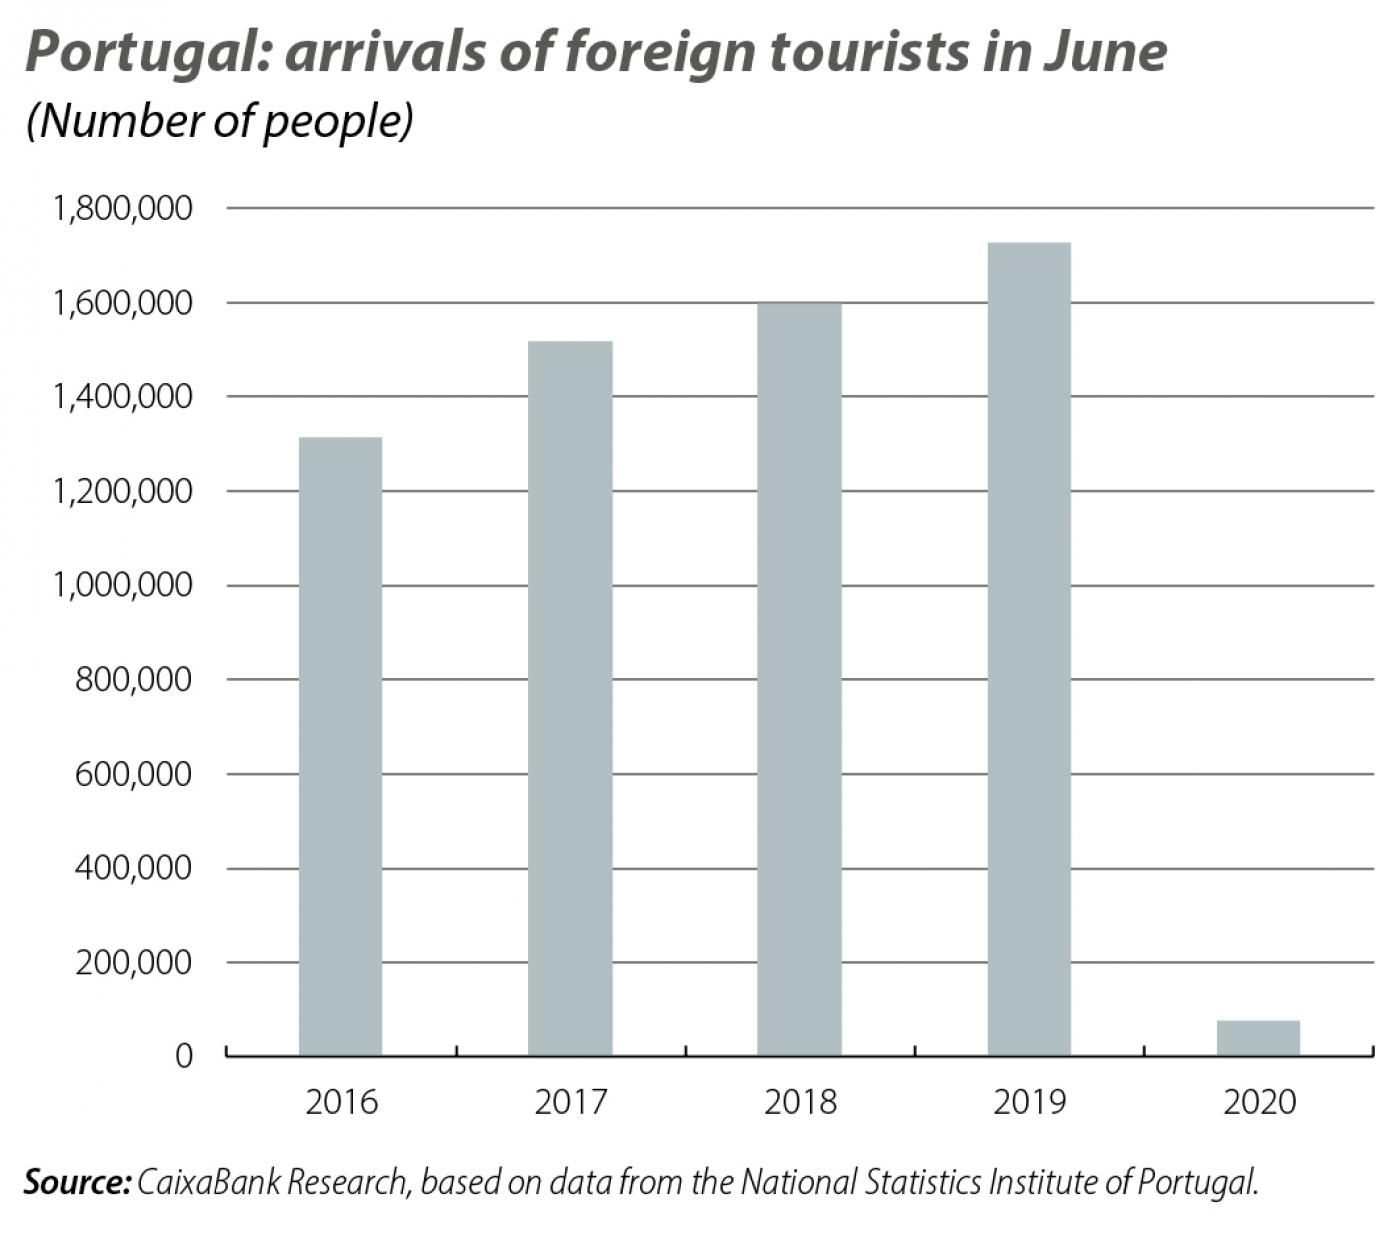 Portugal: arrivals of foreign tourists in June